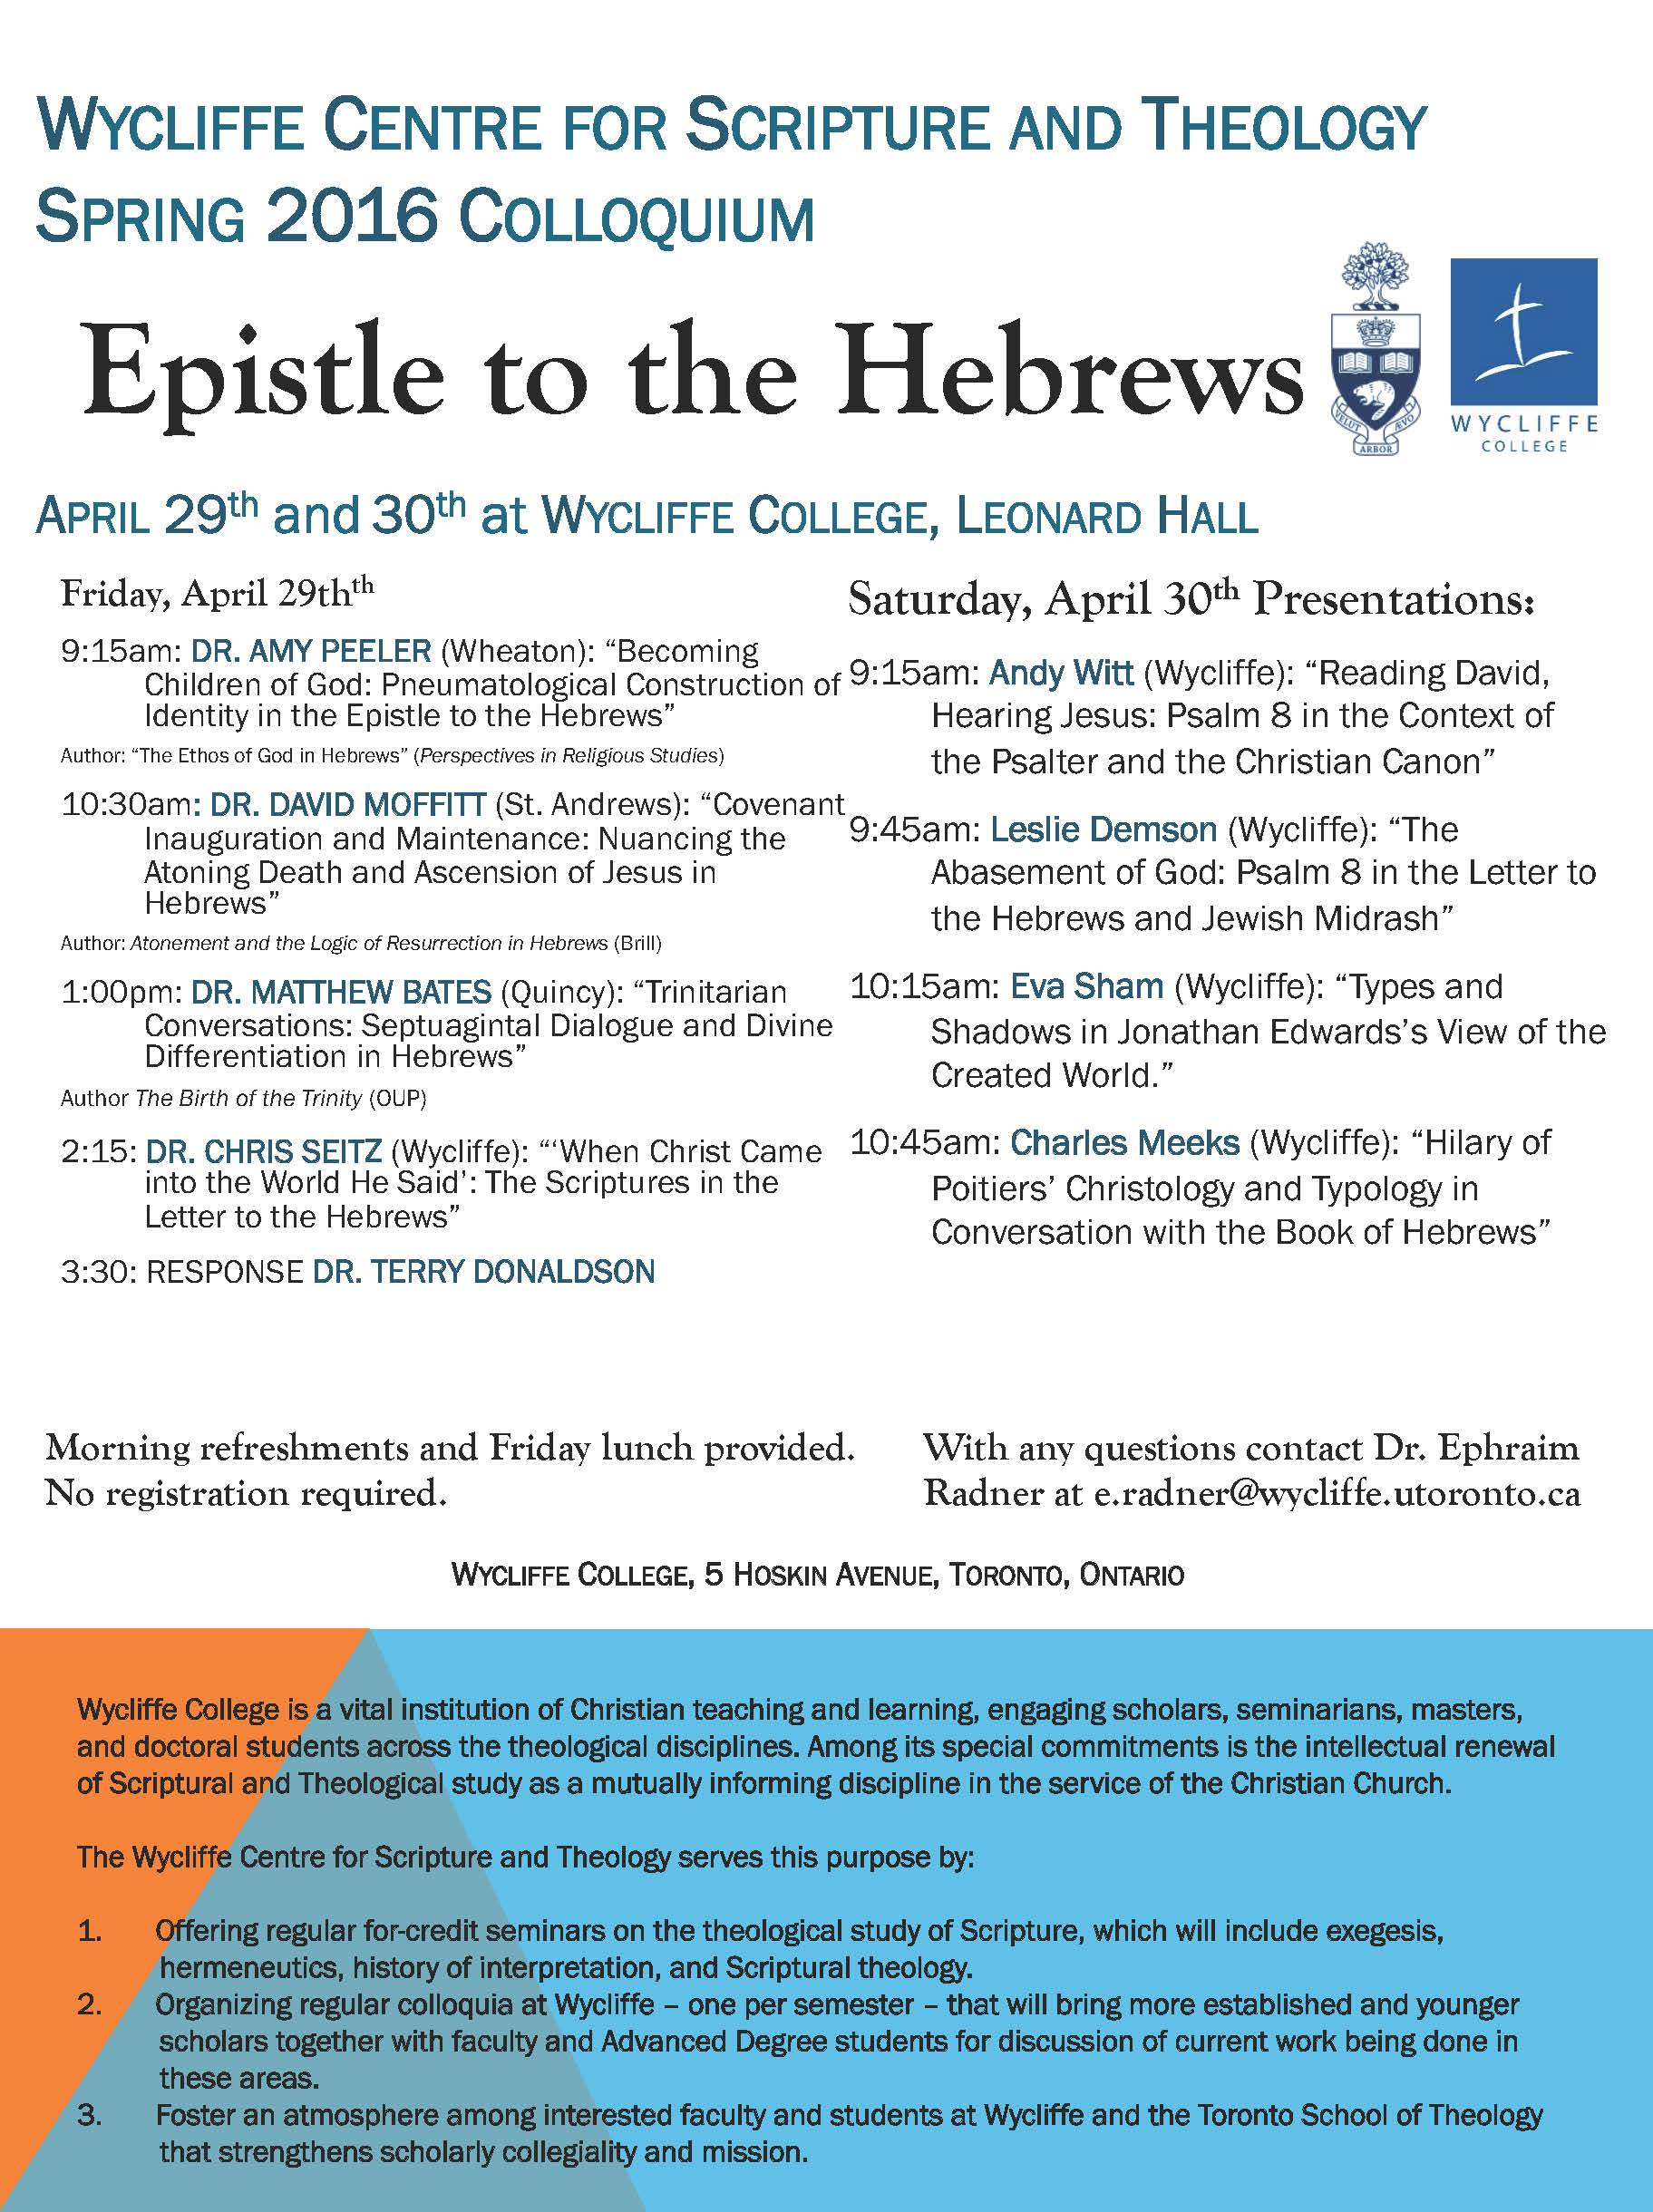 Wycliffe College Scripture and Theology Spring 2016 Colloquium